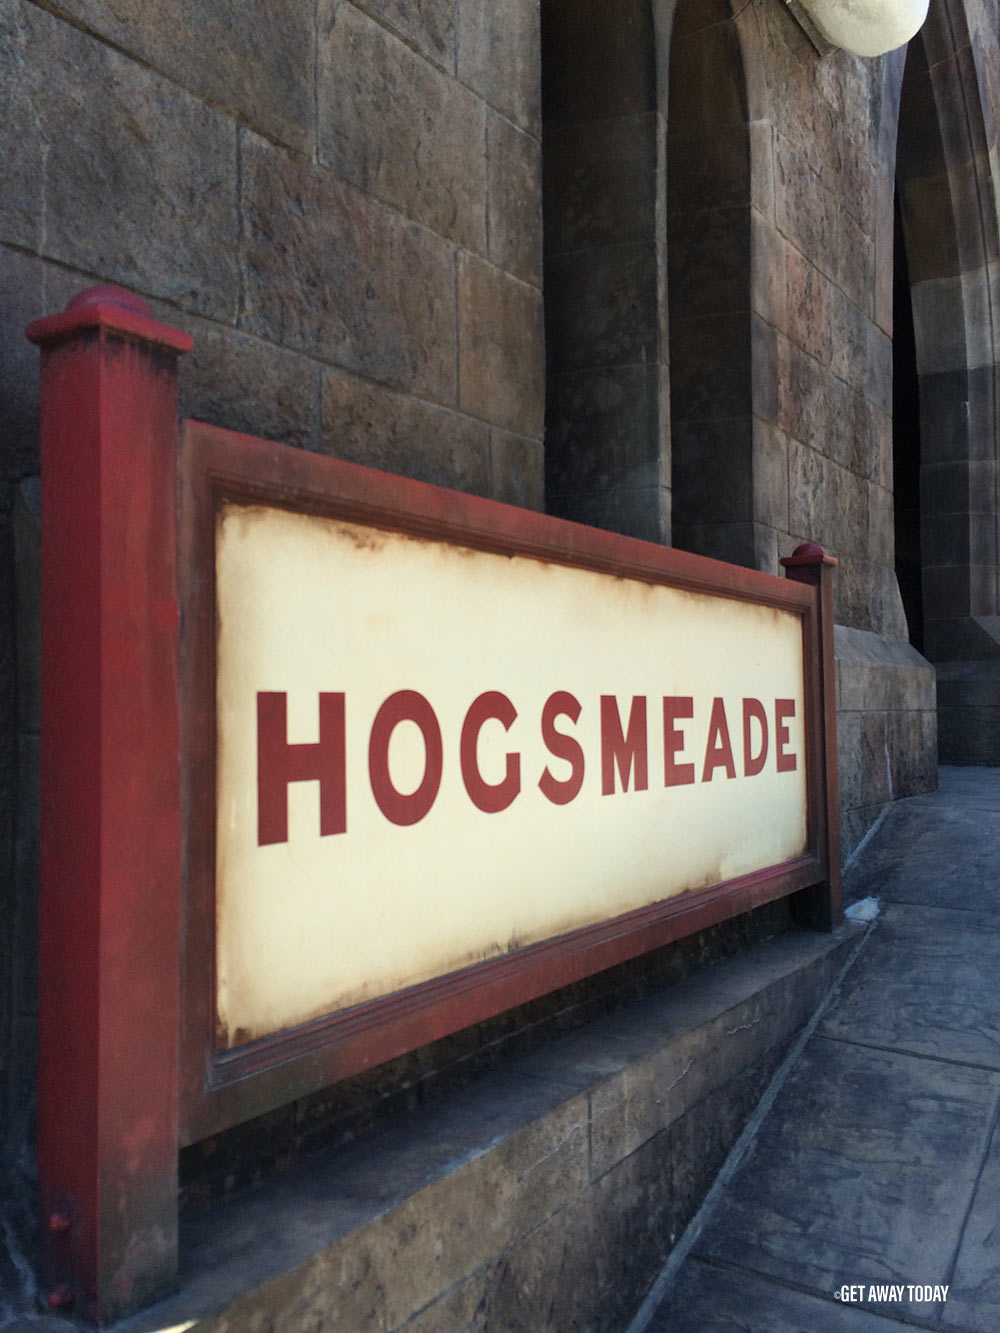 Harry Potter Orlando Hogsmeade